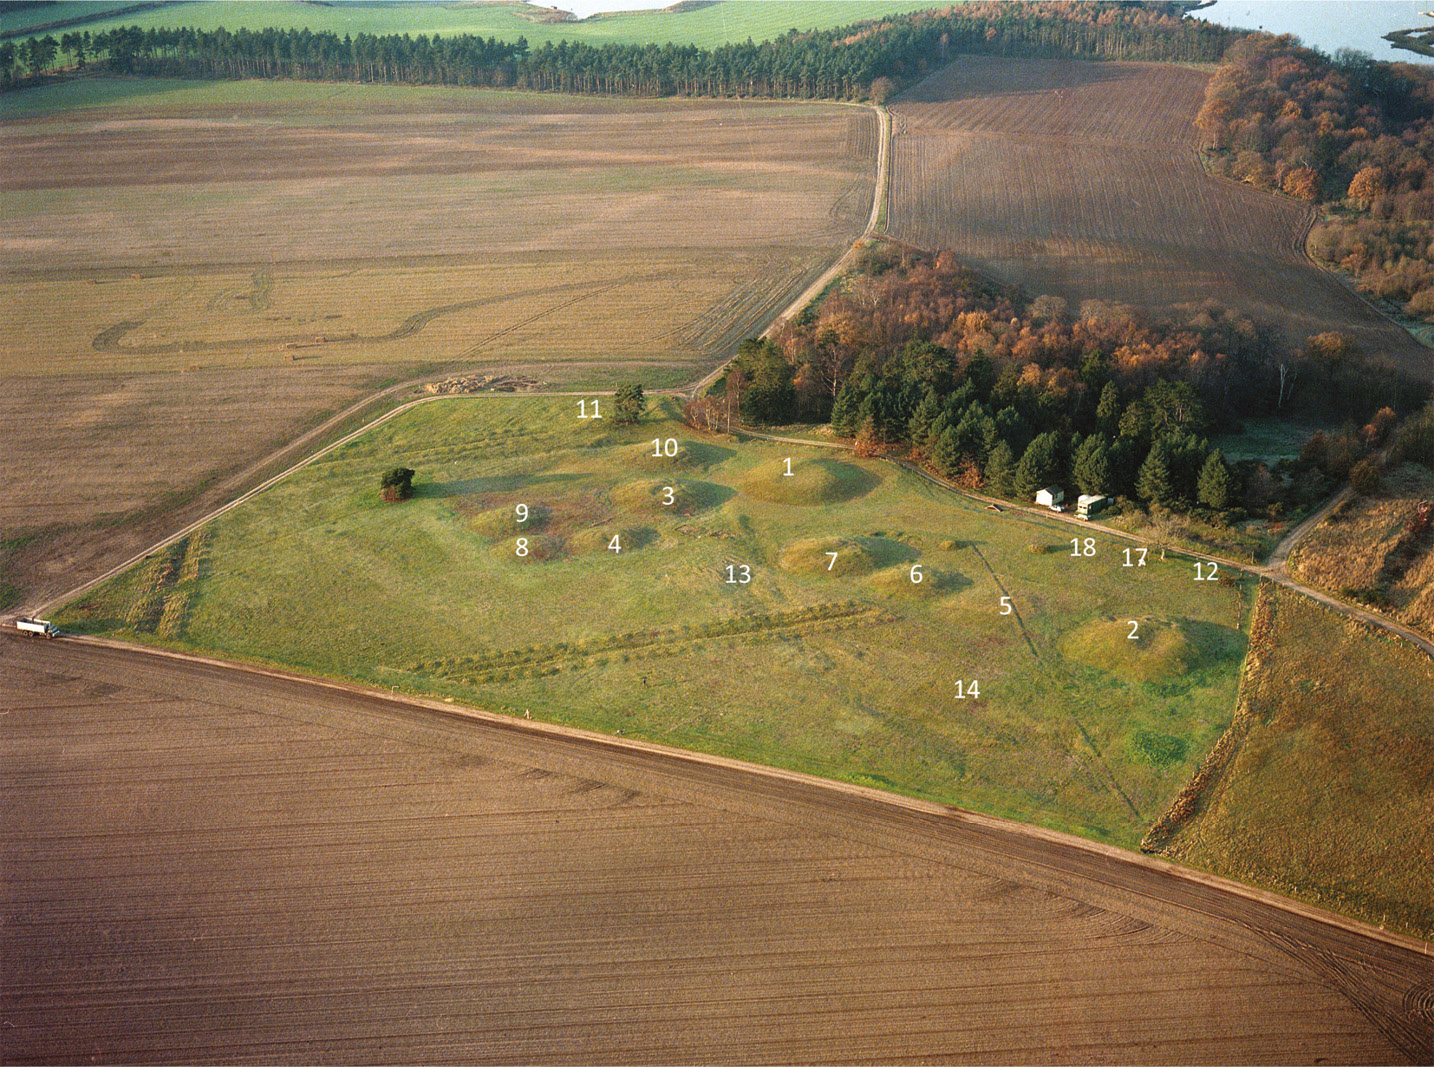 left Overlooking the Sutton Hoo barrow cemetery: Mound 1 is the ship burial excavated in 1939; Mound 14, which was the burial of an elite woman, lies in the bottom right corner of the site.